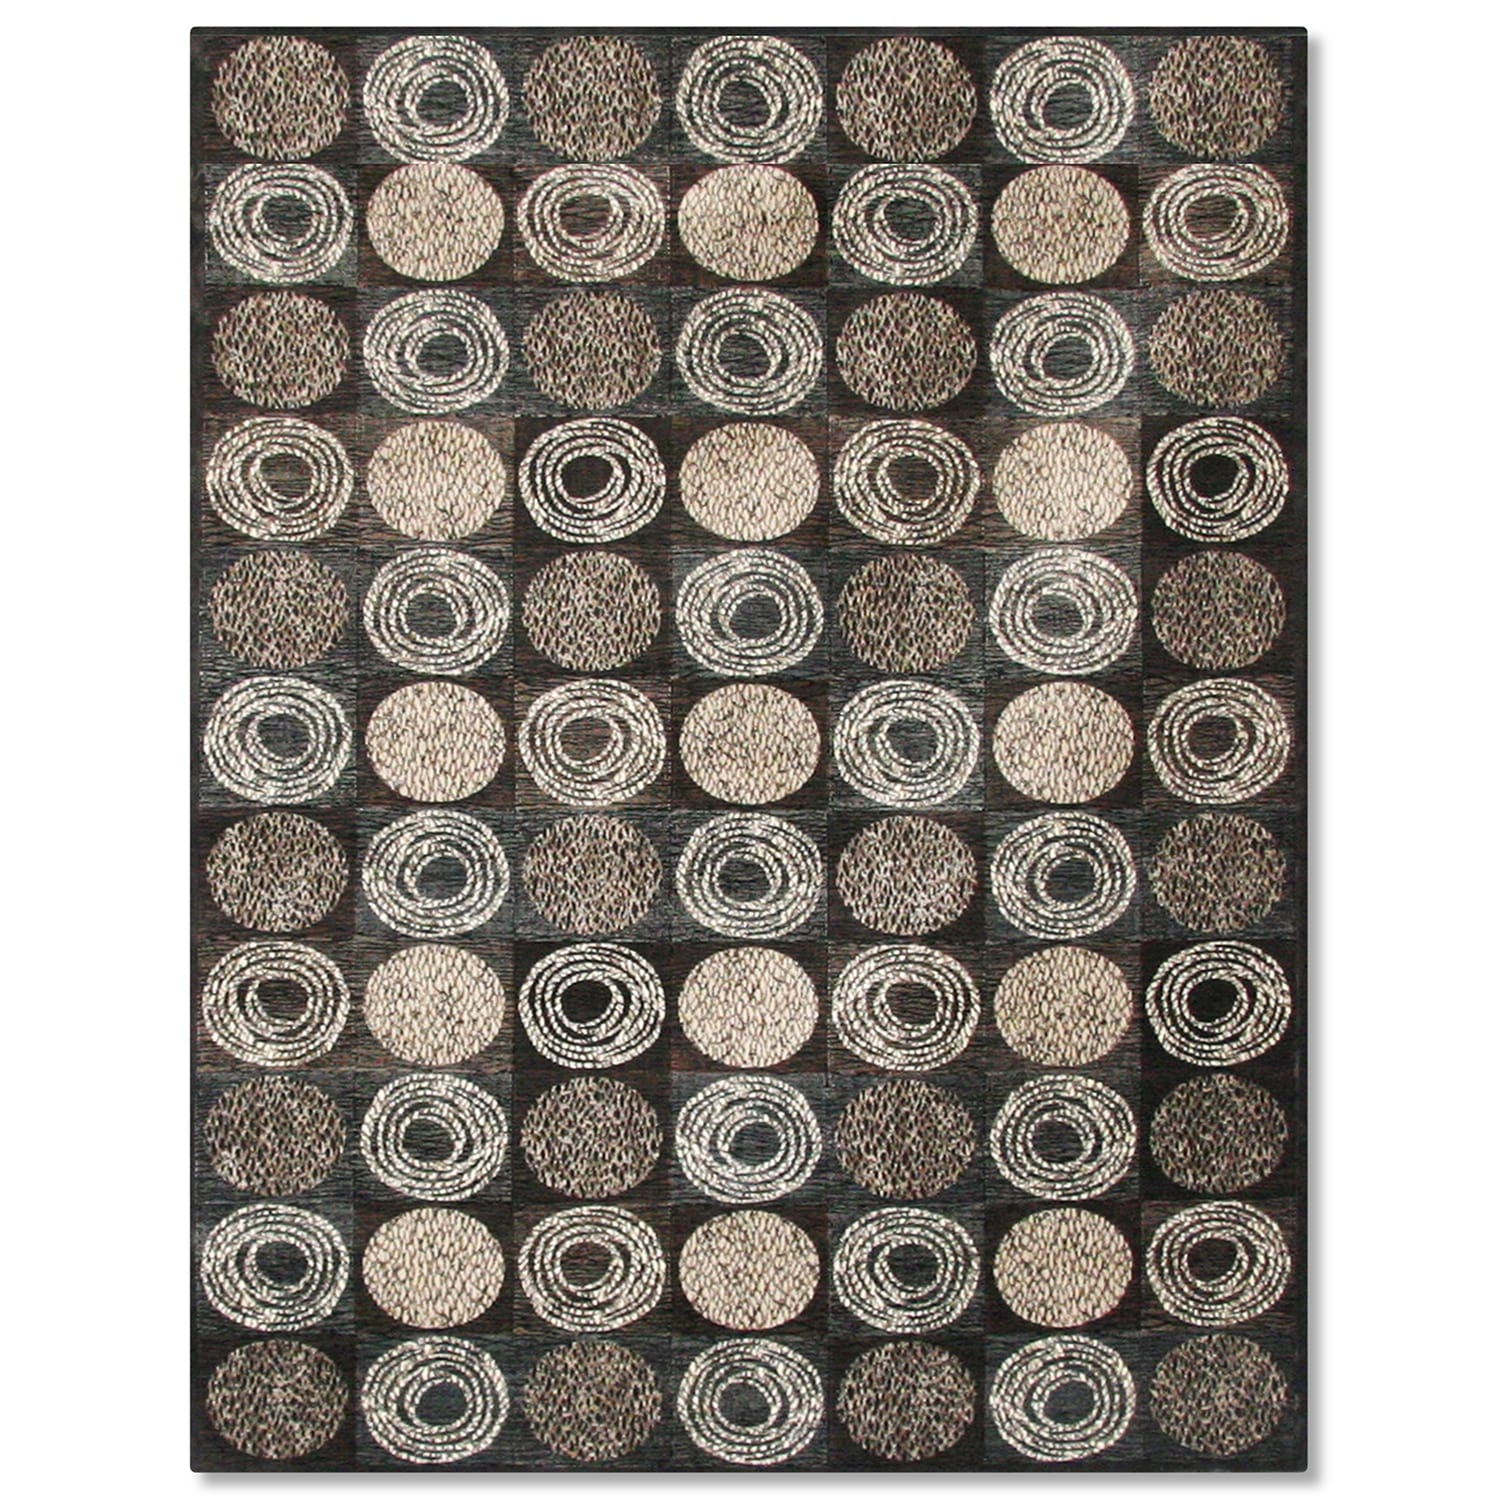 Rugs - Sonoma Laurel Area Rug - Gray and Ivory